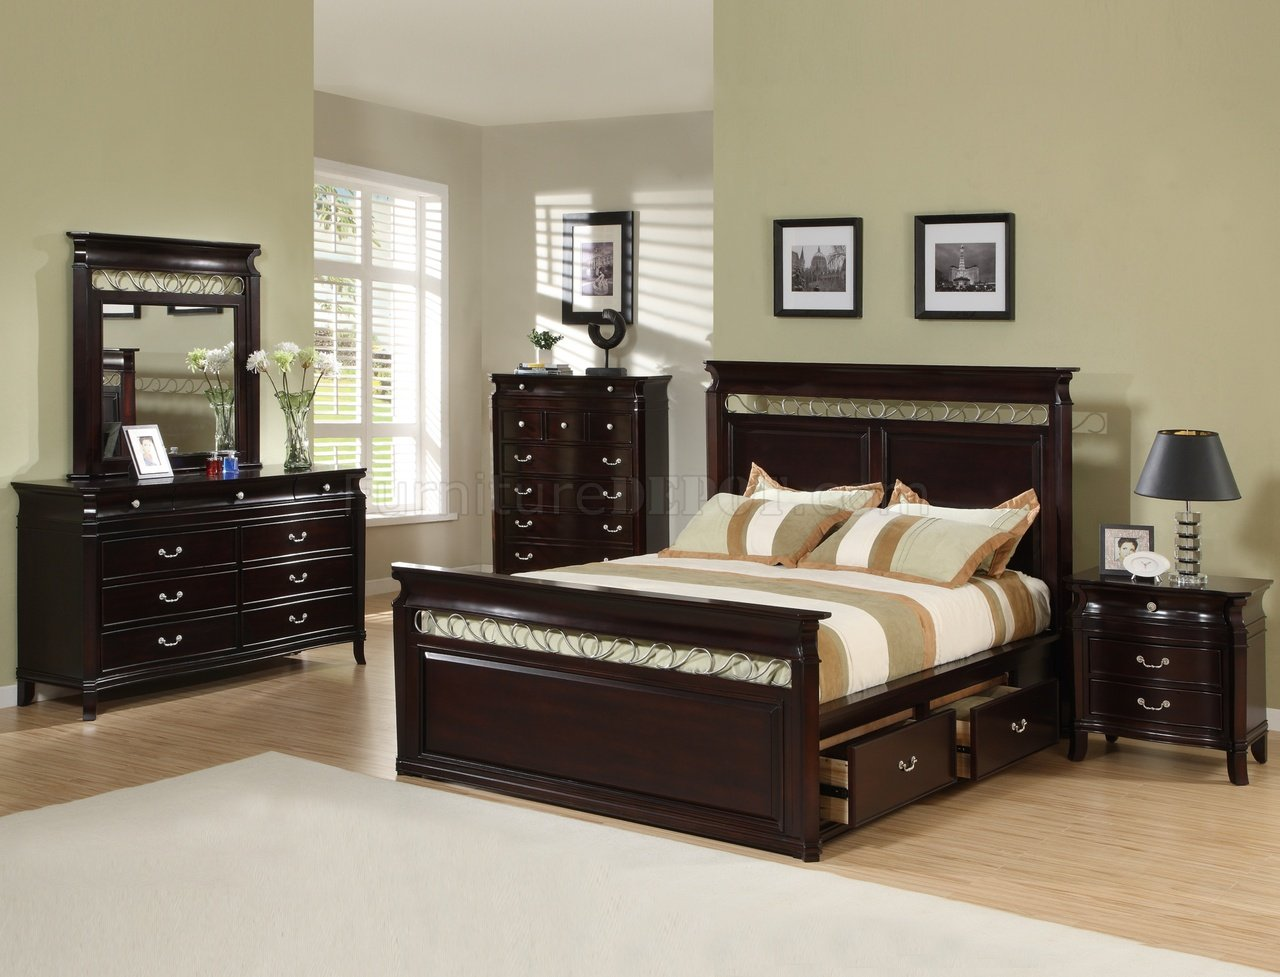 Dark Espresso Finish Contemporary Bedroom W/Storage Bed